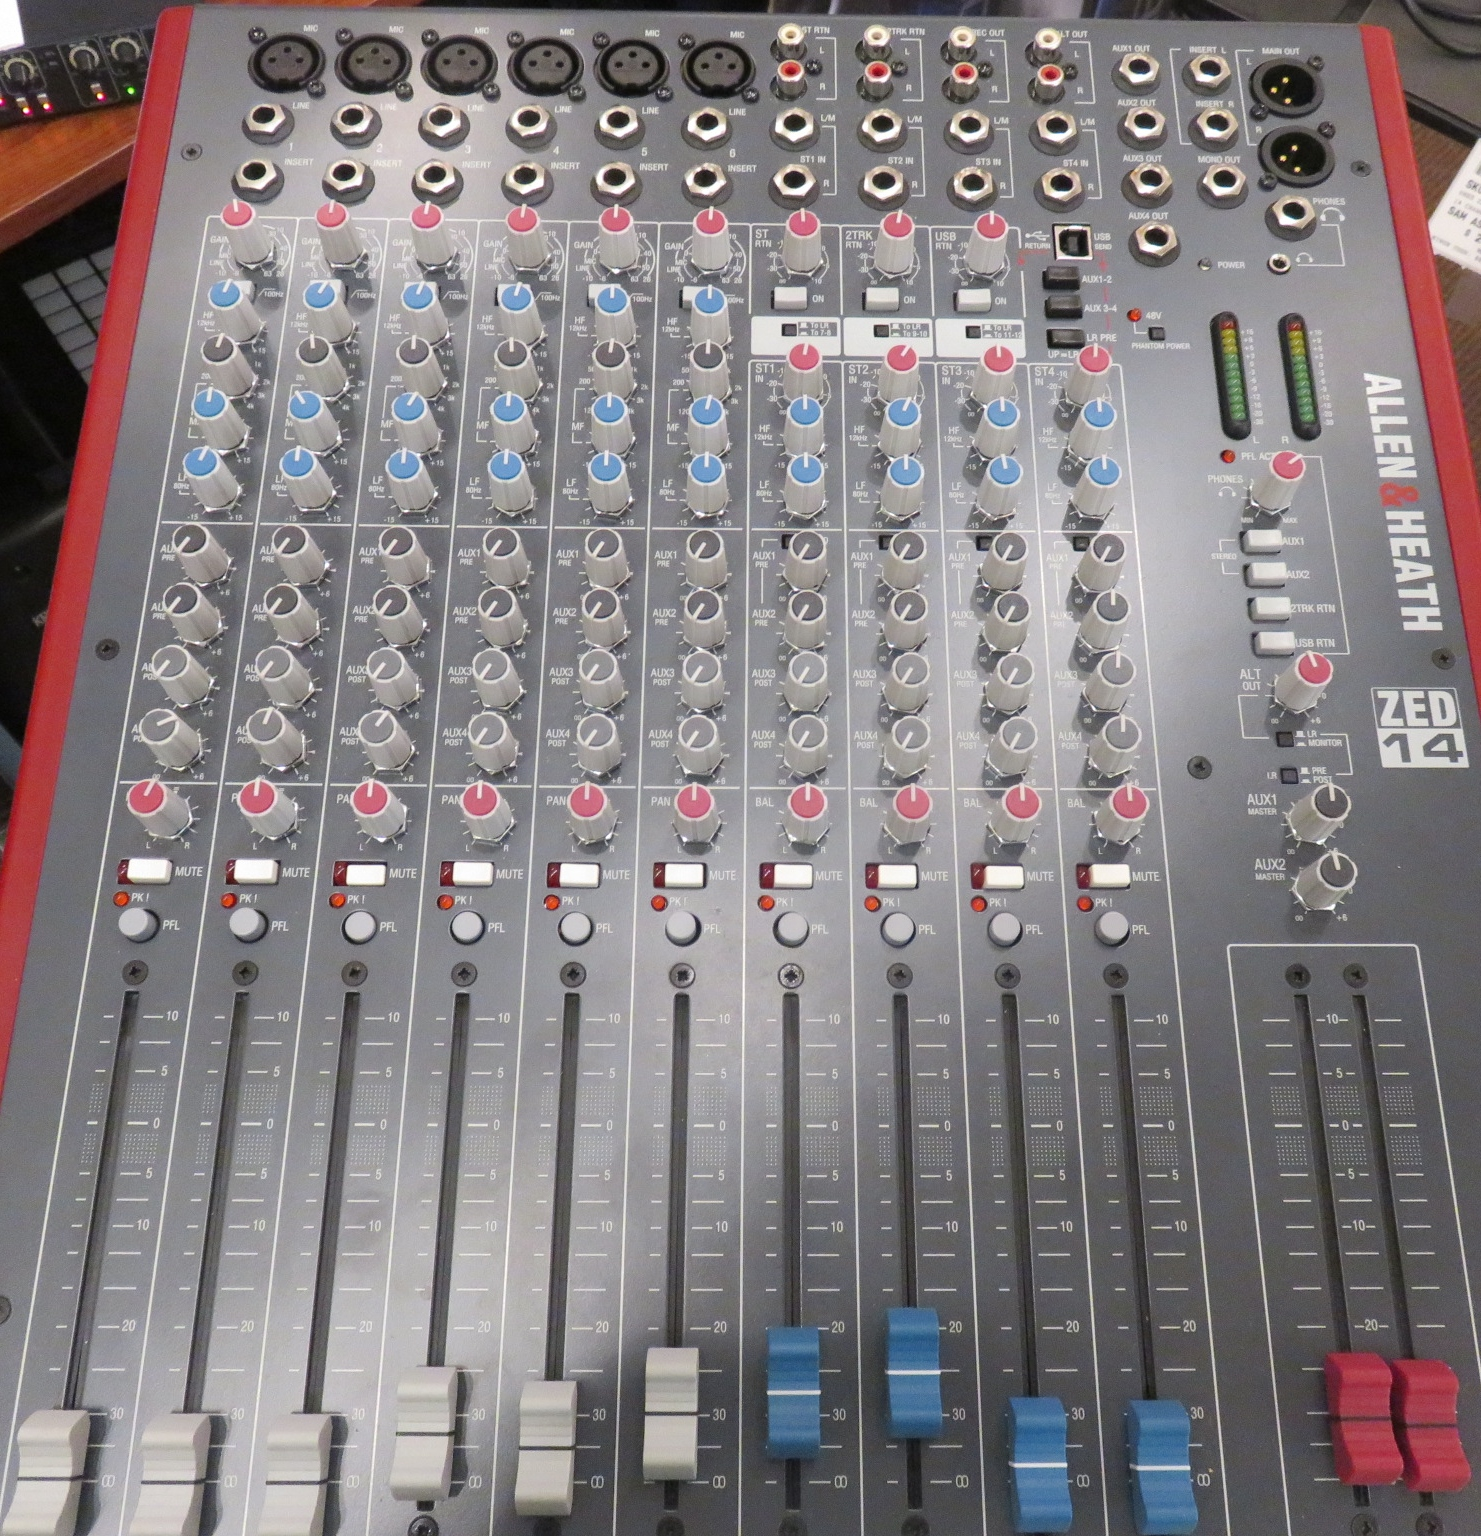 Allen&Heath - Zed 14